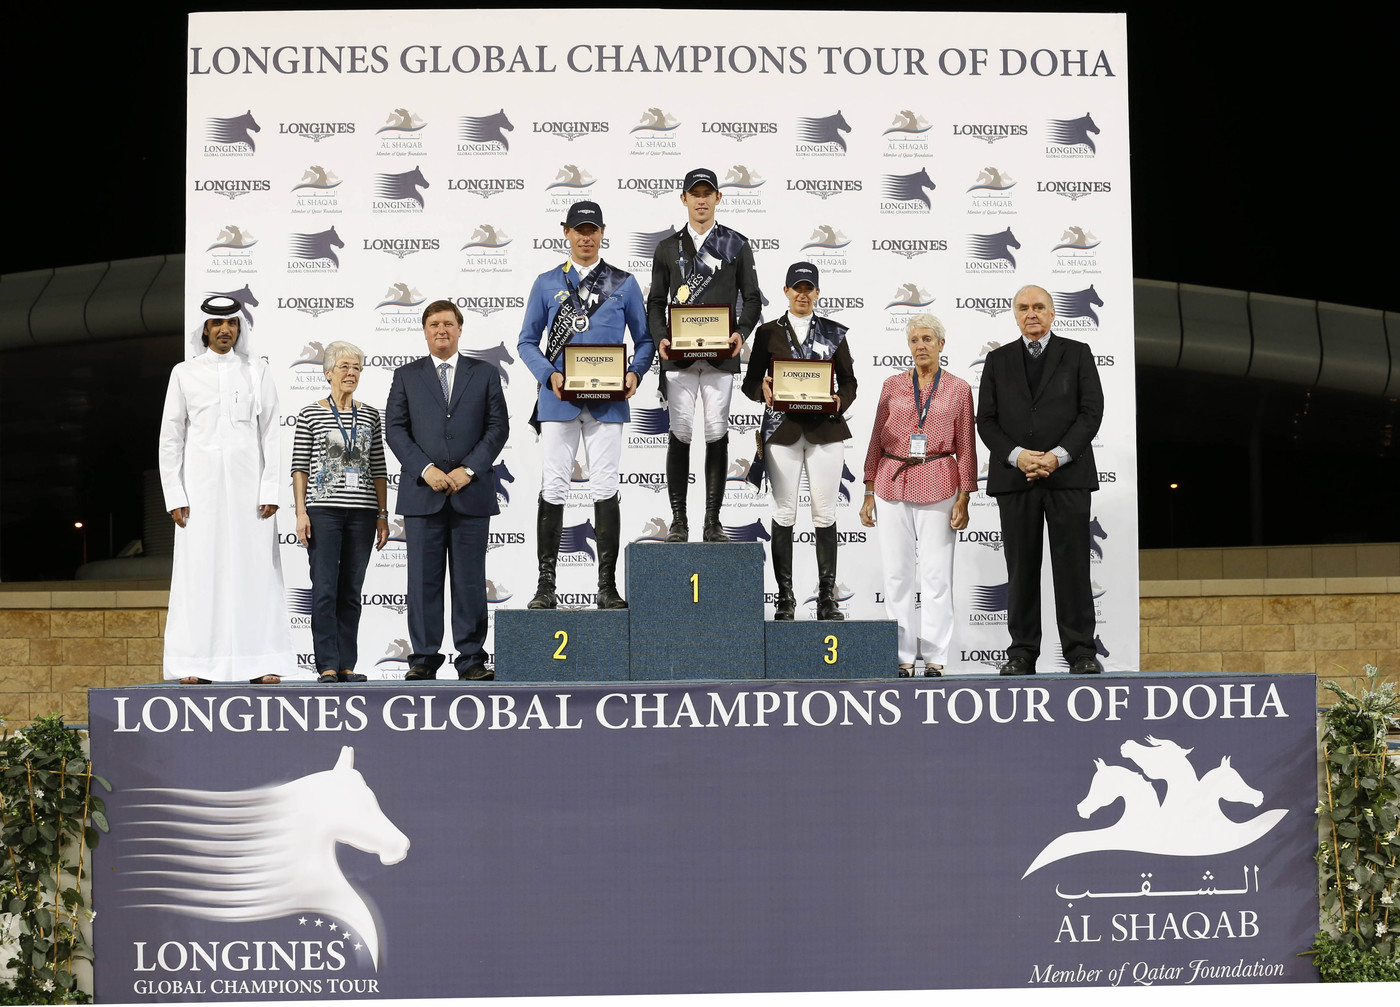 Longines Show Jumping Event: The Longines Global Champions Tour 2013 – A thrilling finale in Doha 4